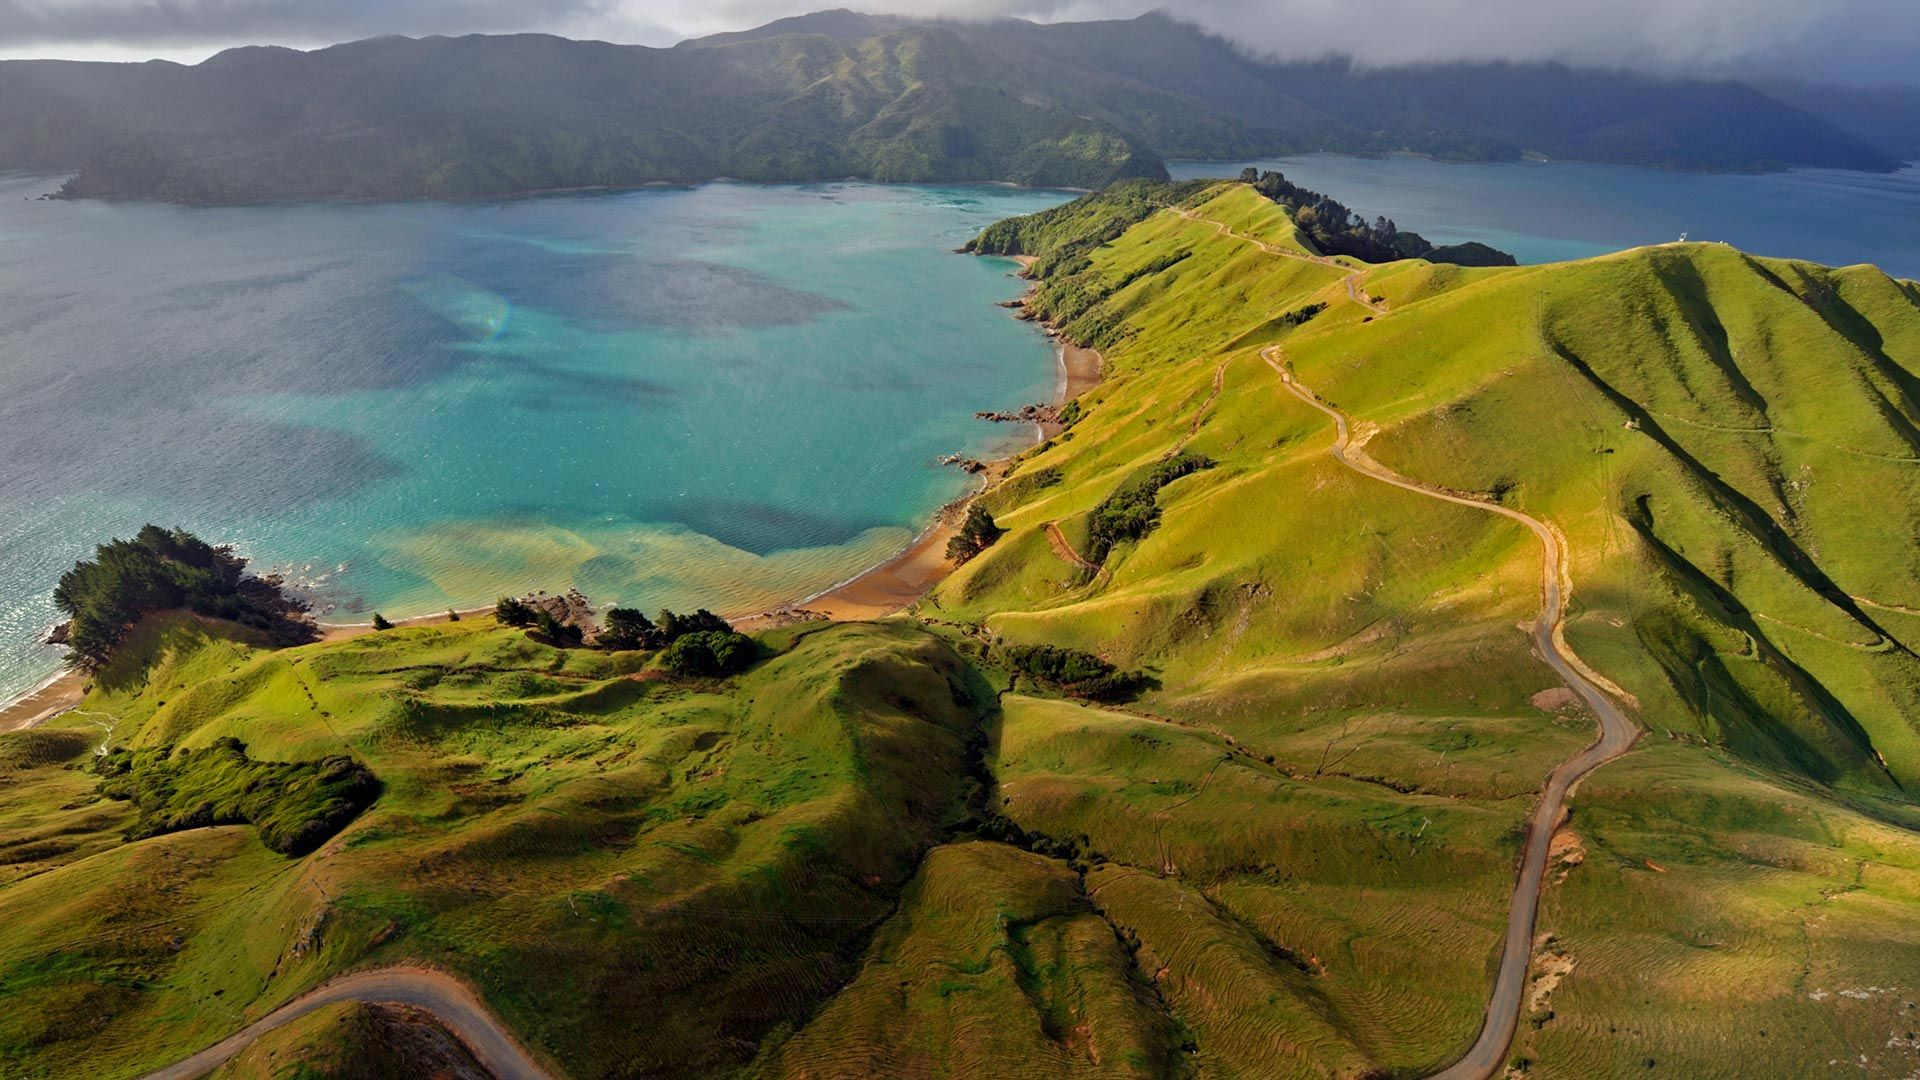 Aerial view of Marlborough Sounds, New Zealand